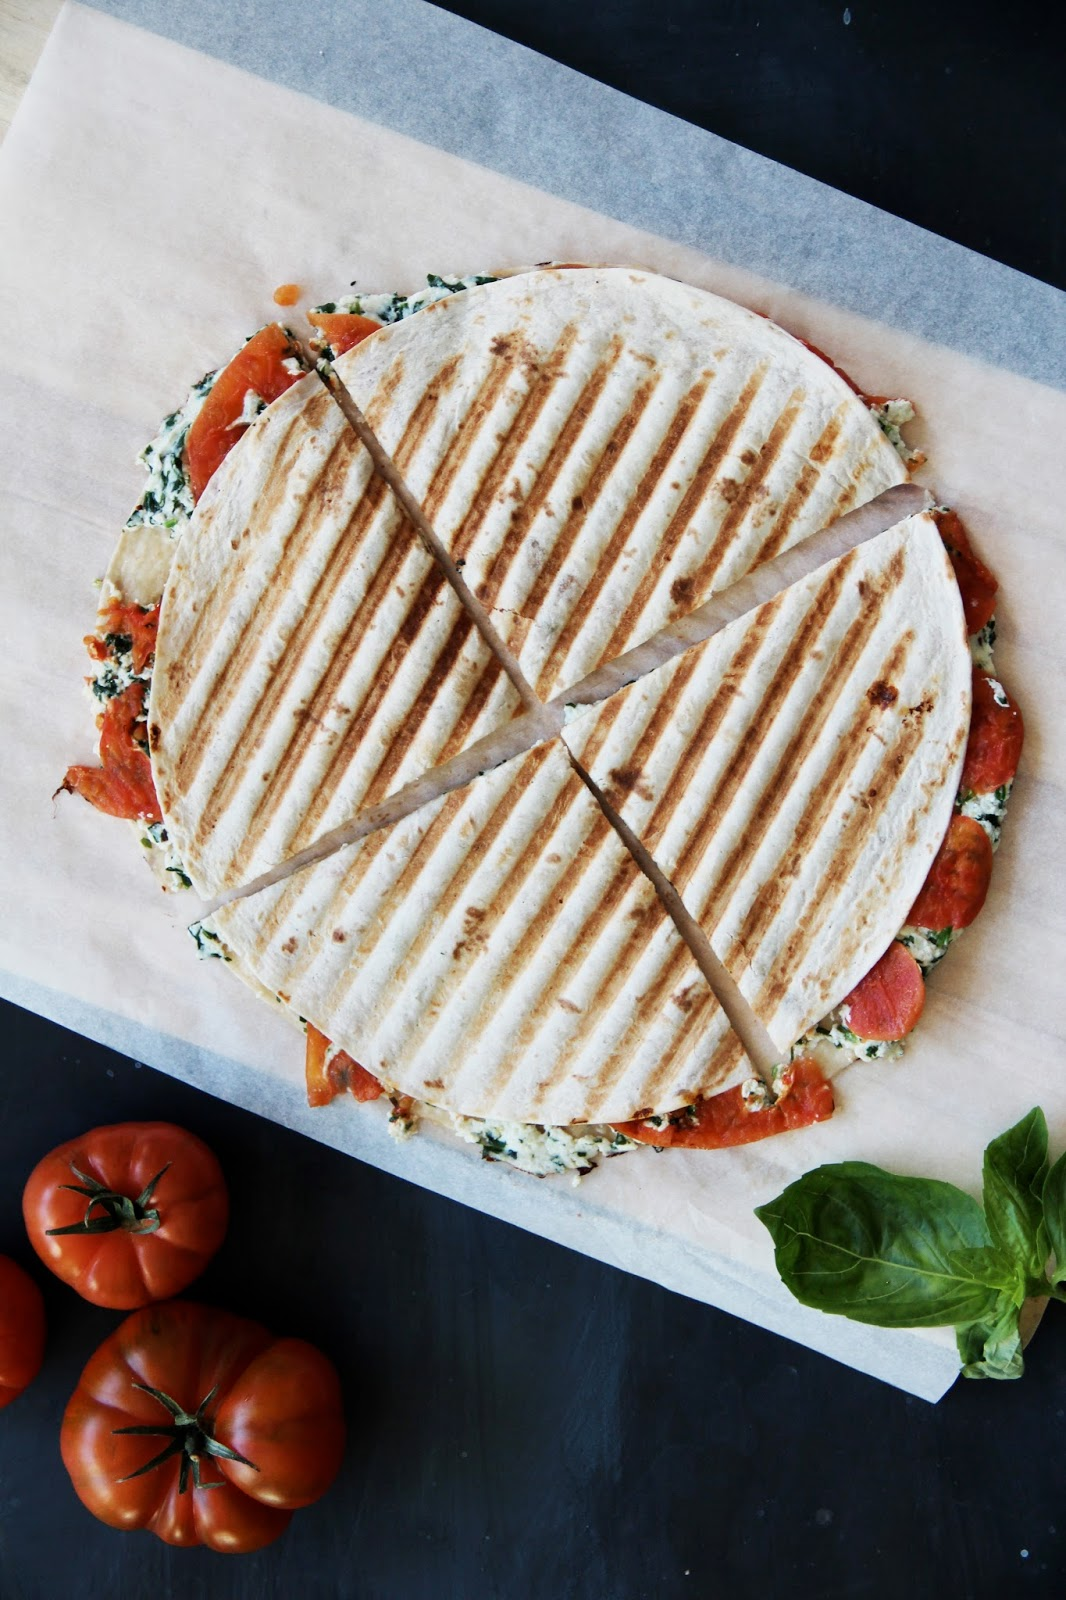 Grilled Ricotta Tomato Quesadillas